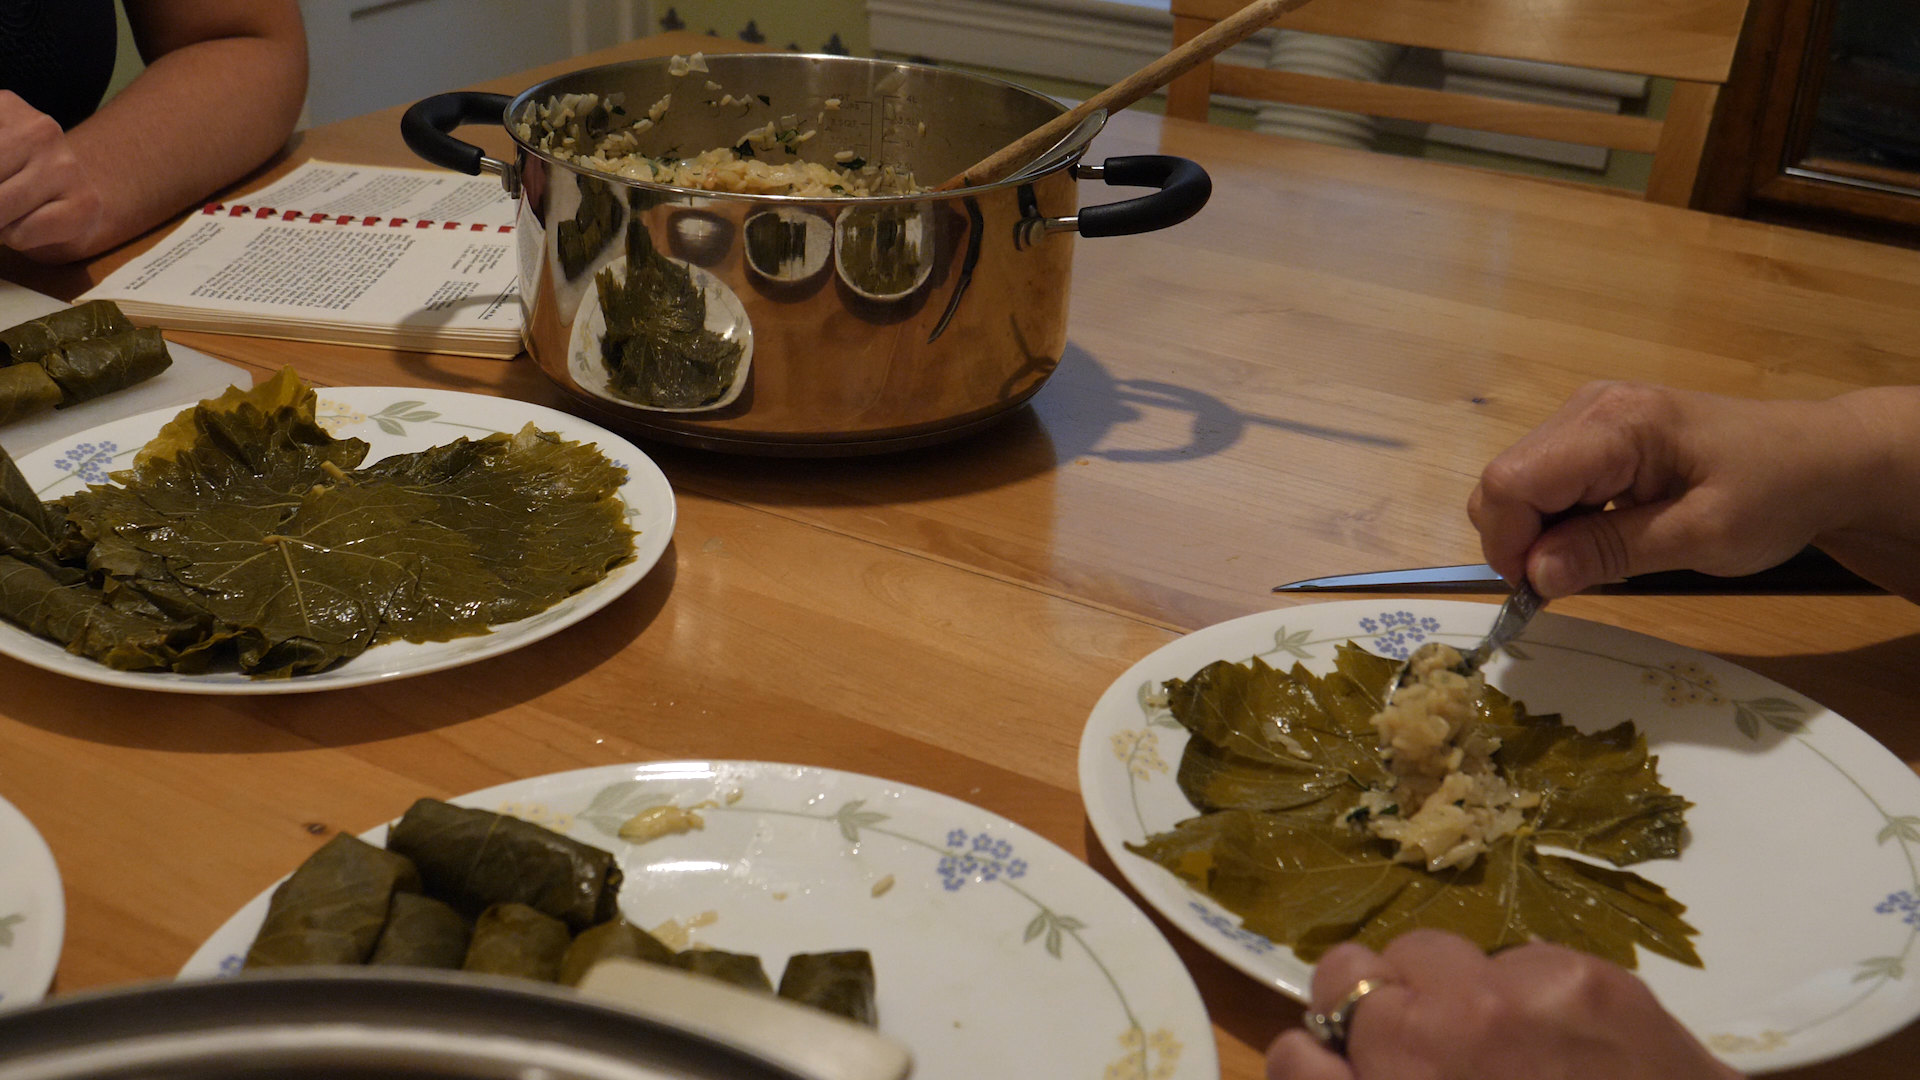 Grape leaves on a table